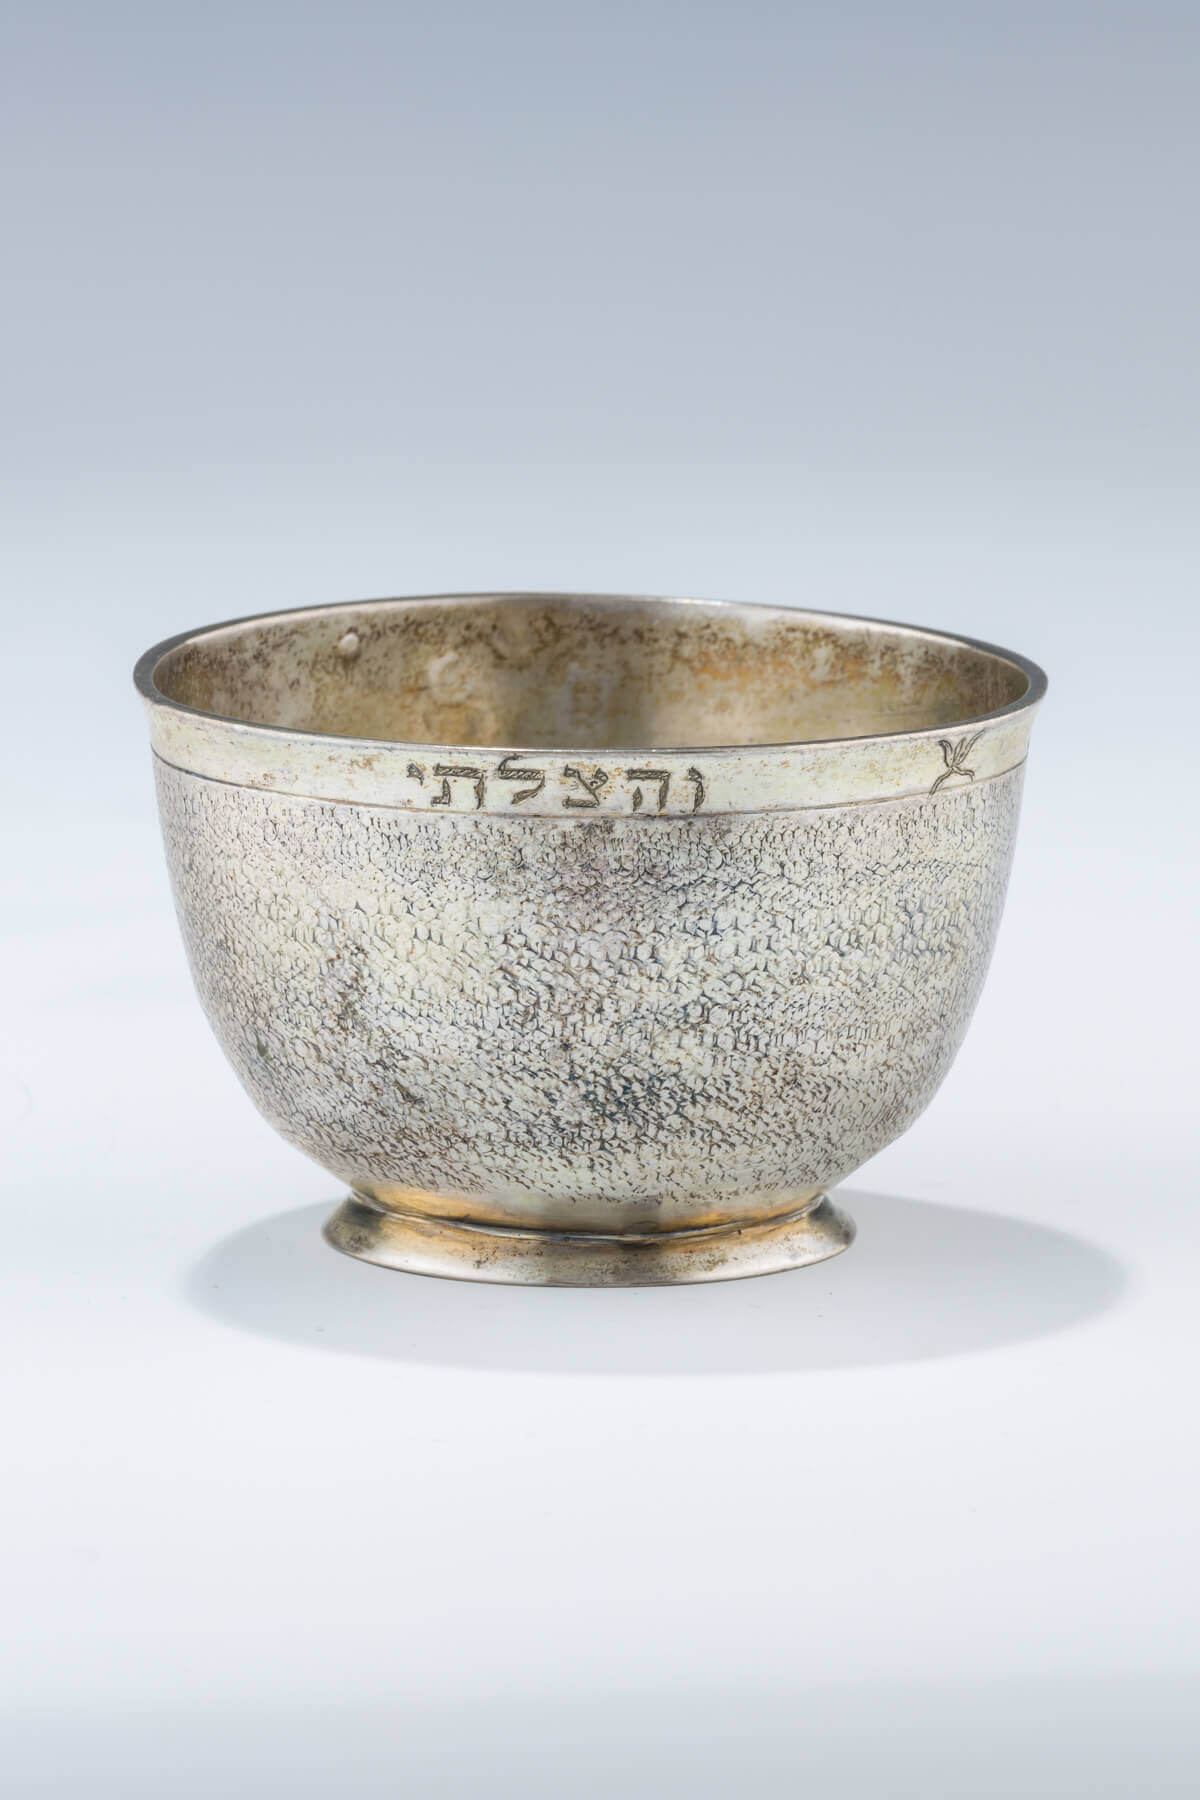 113. AN EARLY SILVER PASSOVER BEAKER